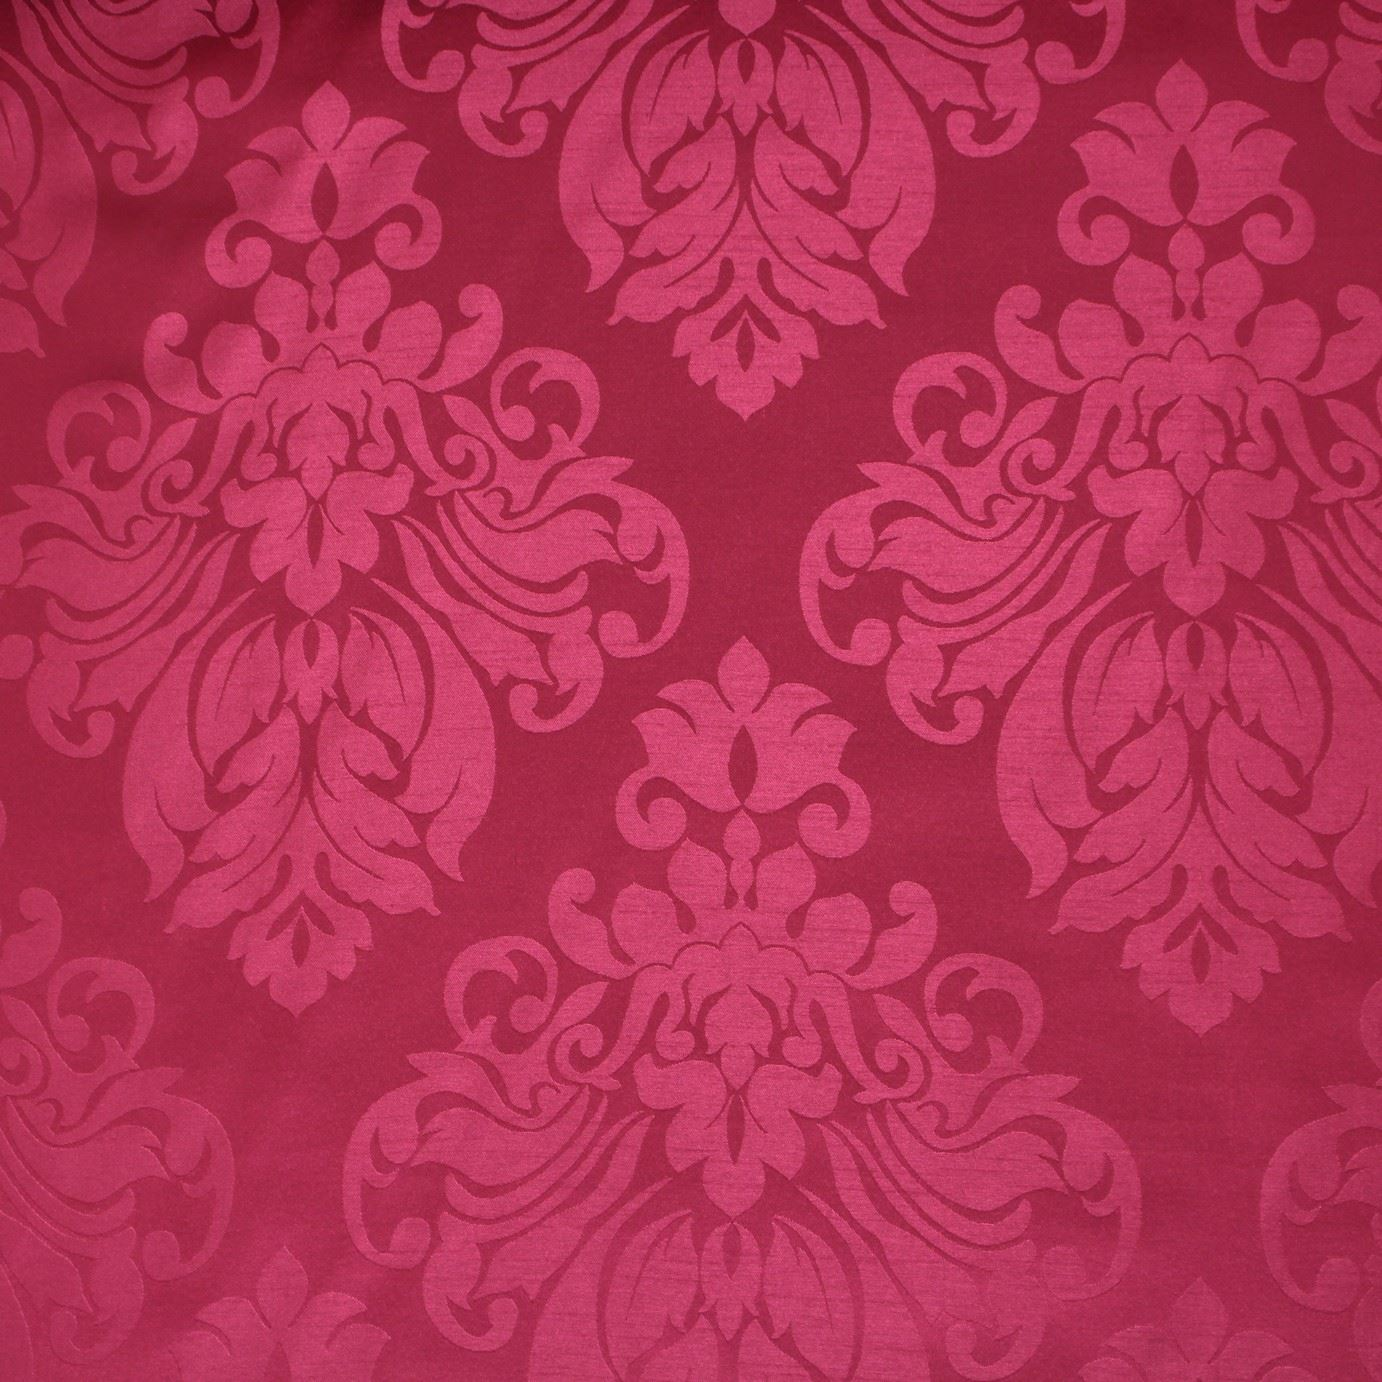 Pink Damask Upholstery Fabric Www Topsimages Com